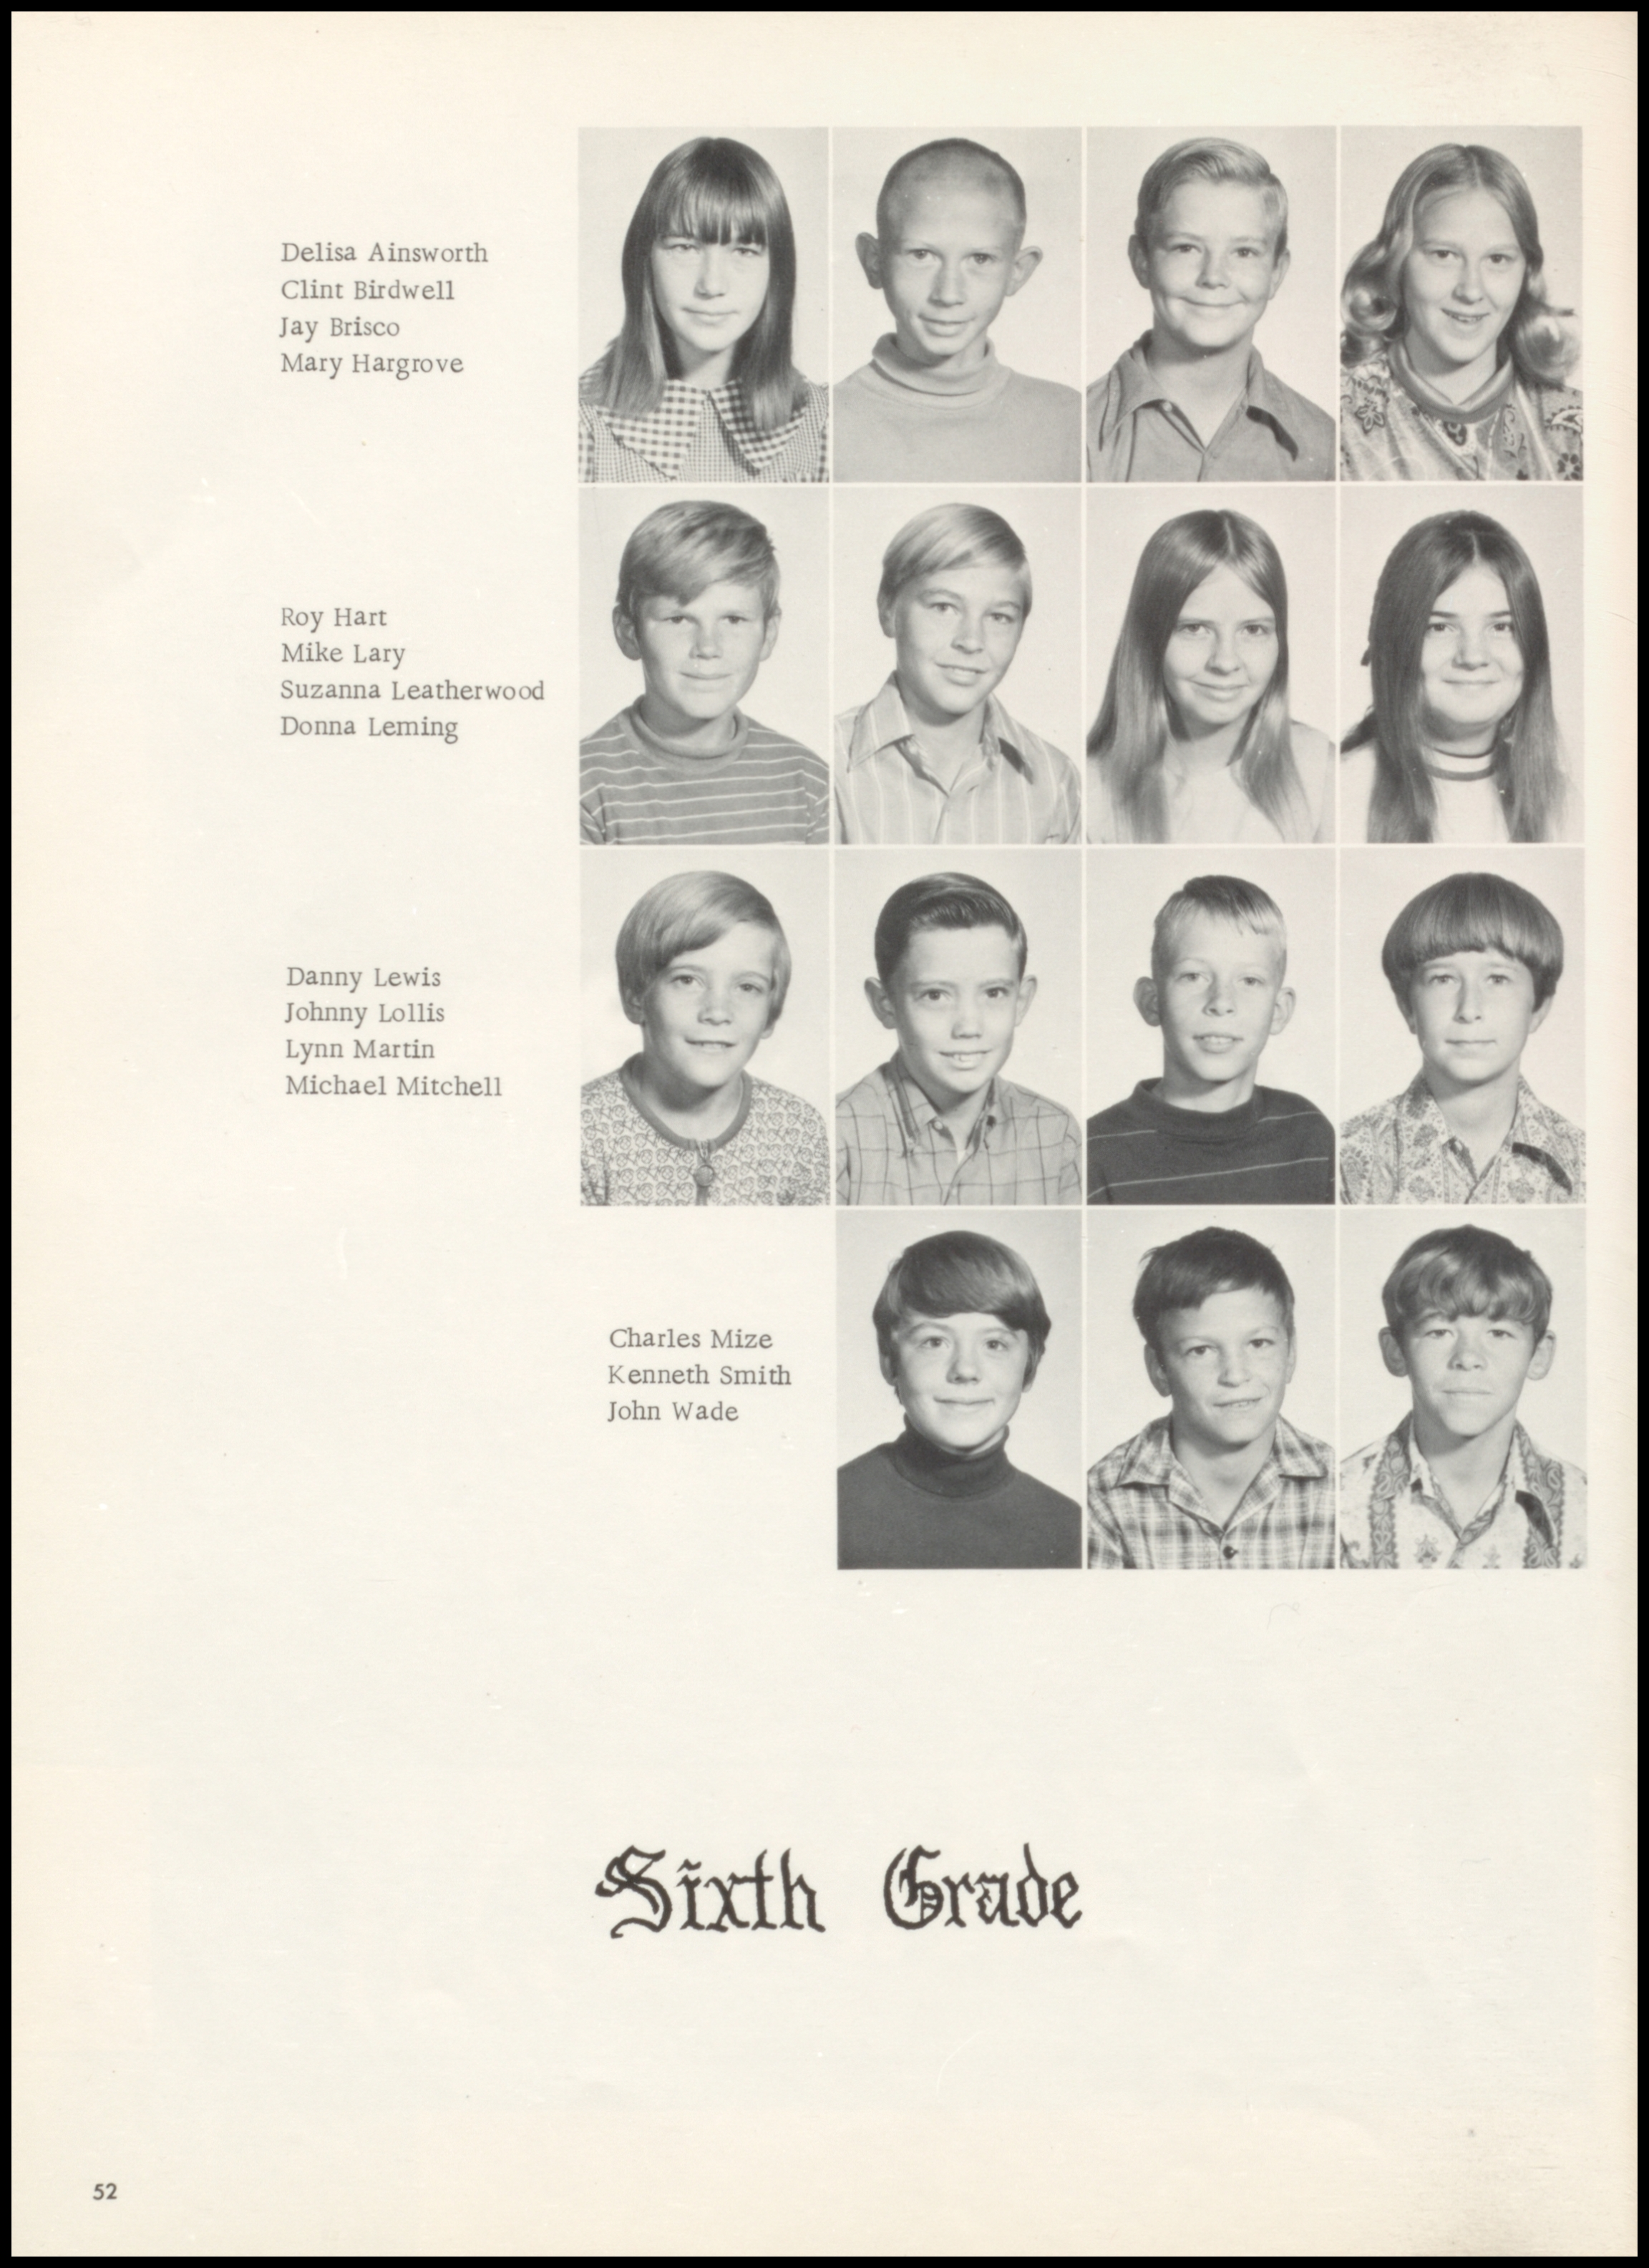 index of s l m for the bryson tx school yearbooks loncar lydia faculty picture 1952 0017 middot loncar lydia faculty picture 1953 0017